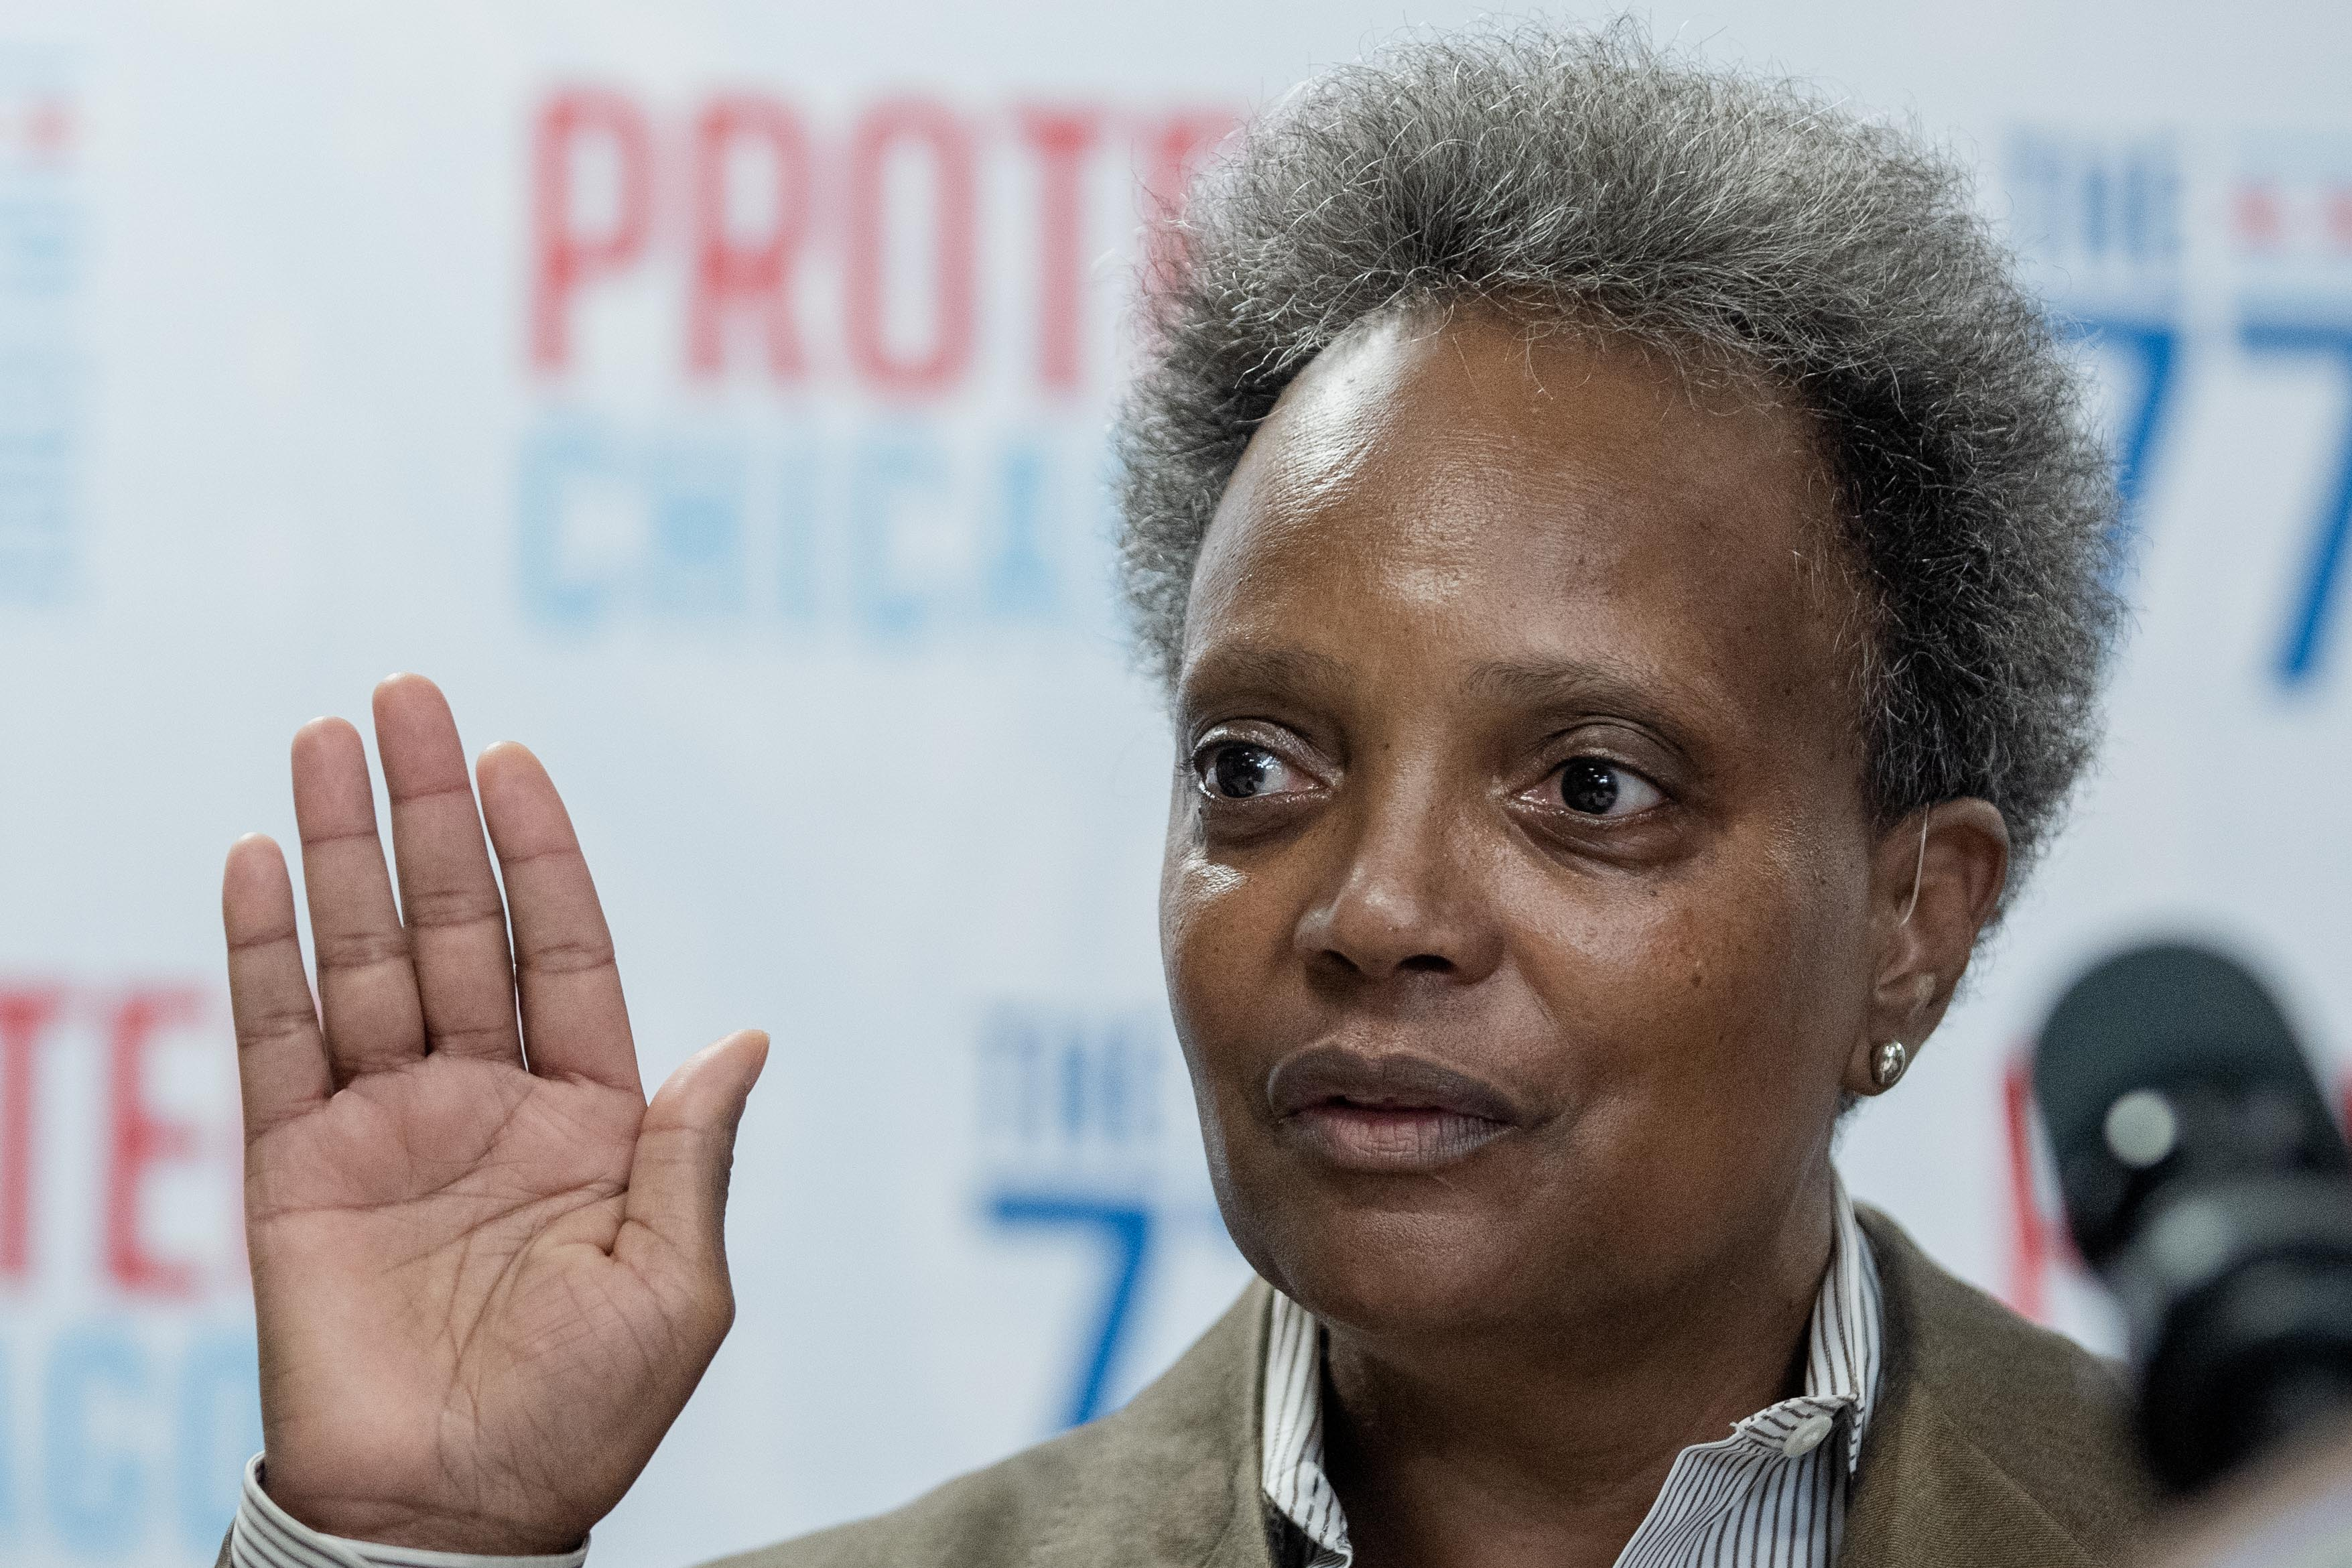 Mayor Lori Lightfoot unveiled a new program Friday to encourage unvaccinated Chicago residents to get the shot.